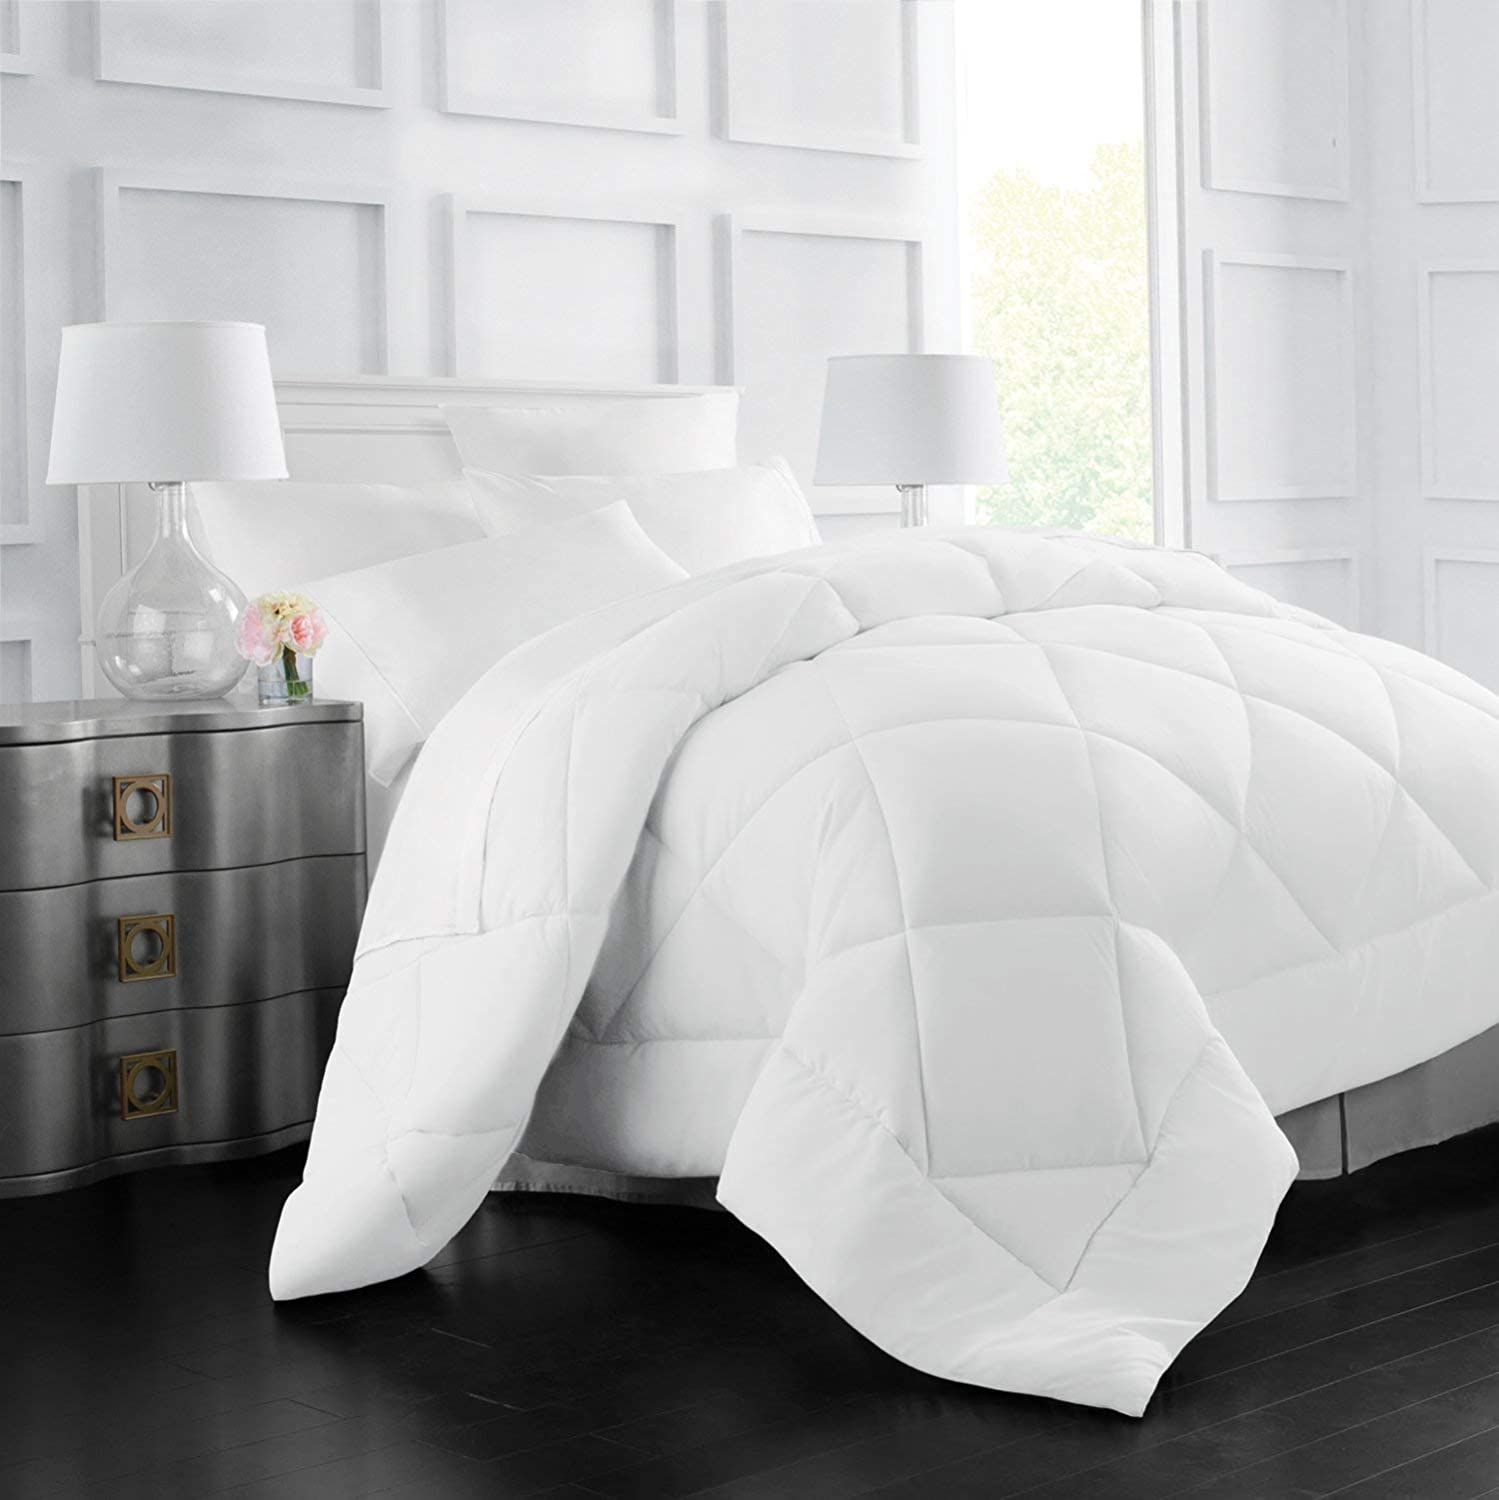 Italian Luxury Goose Down Alternative Comforter - All Season - 2100 Series Hotel Collection - Luxury Hypoallergenic Comforter - Full/Queen - White